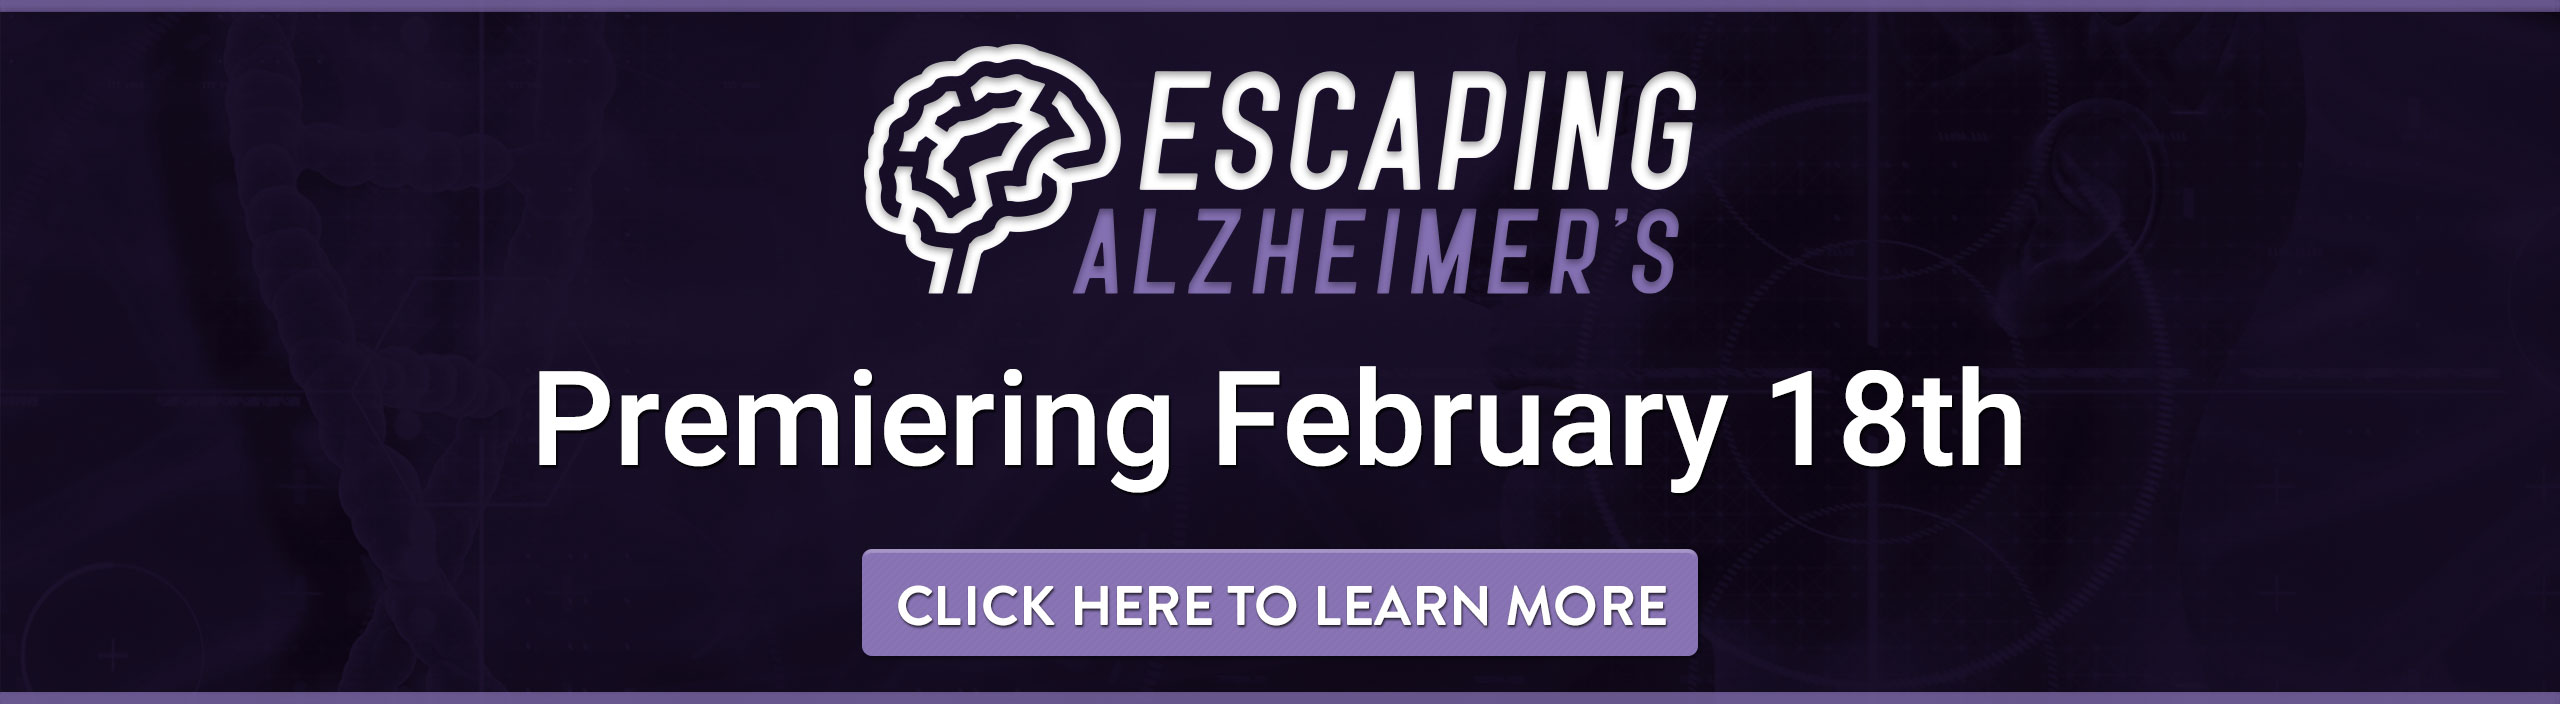 Escaping Alzheimer's